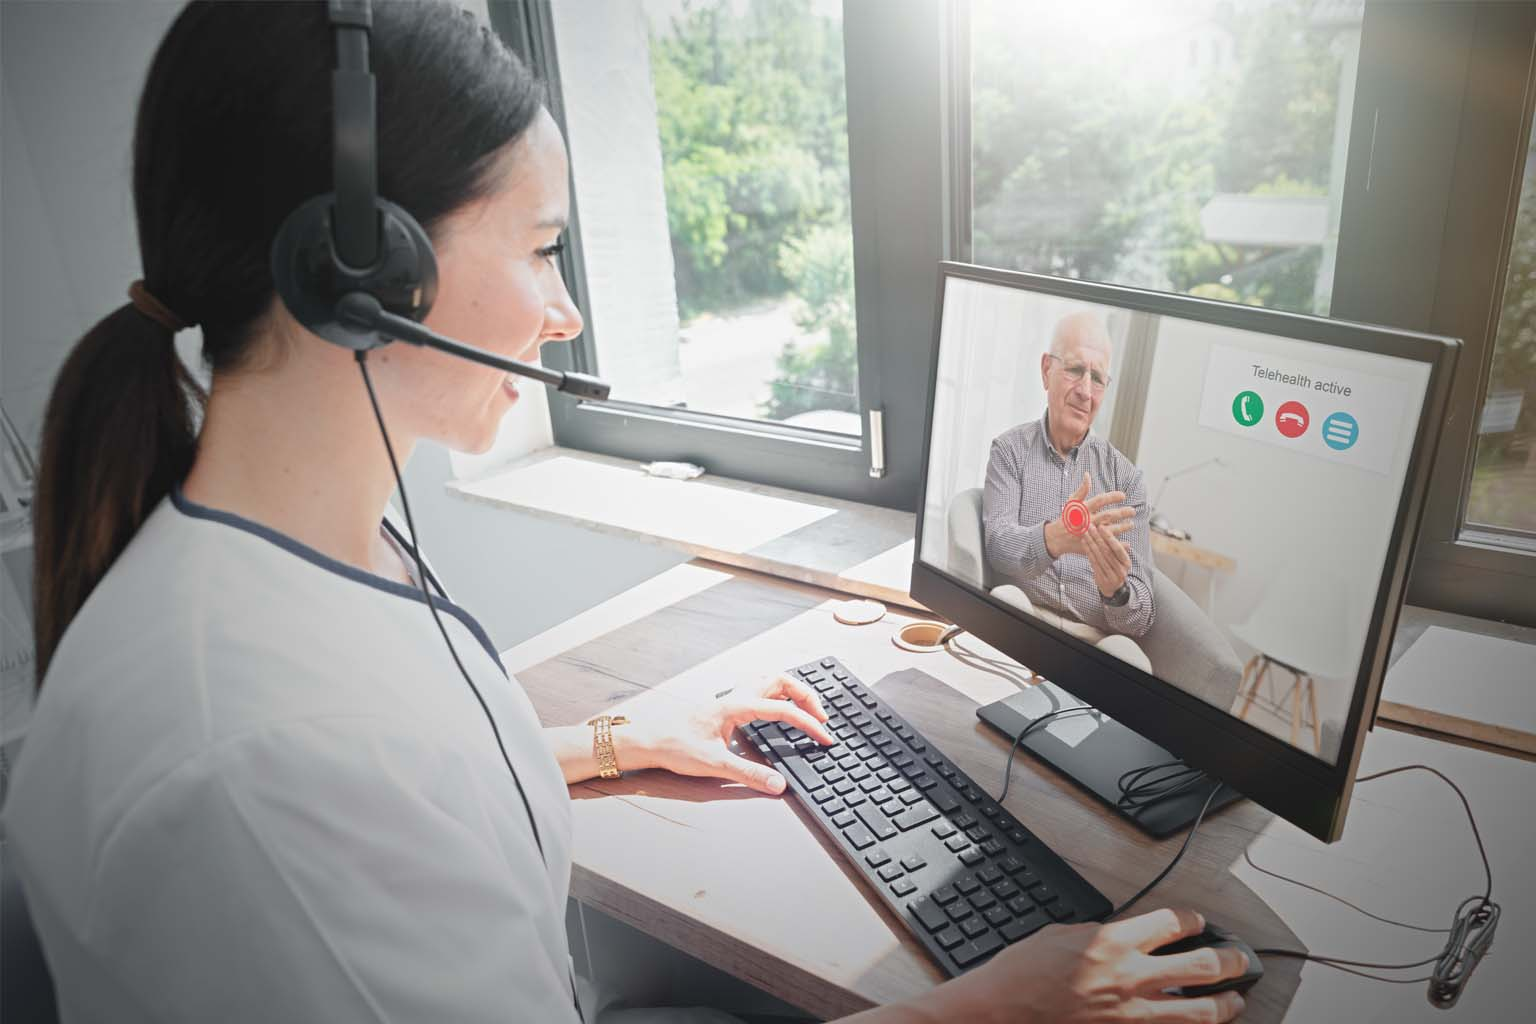 Health care provider at computer on video call with patient